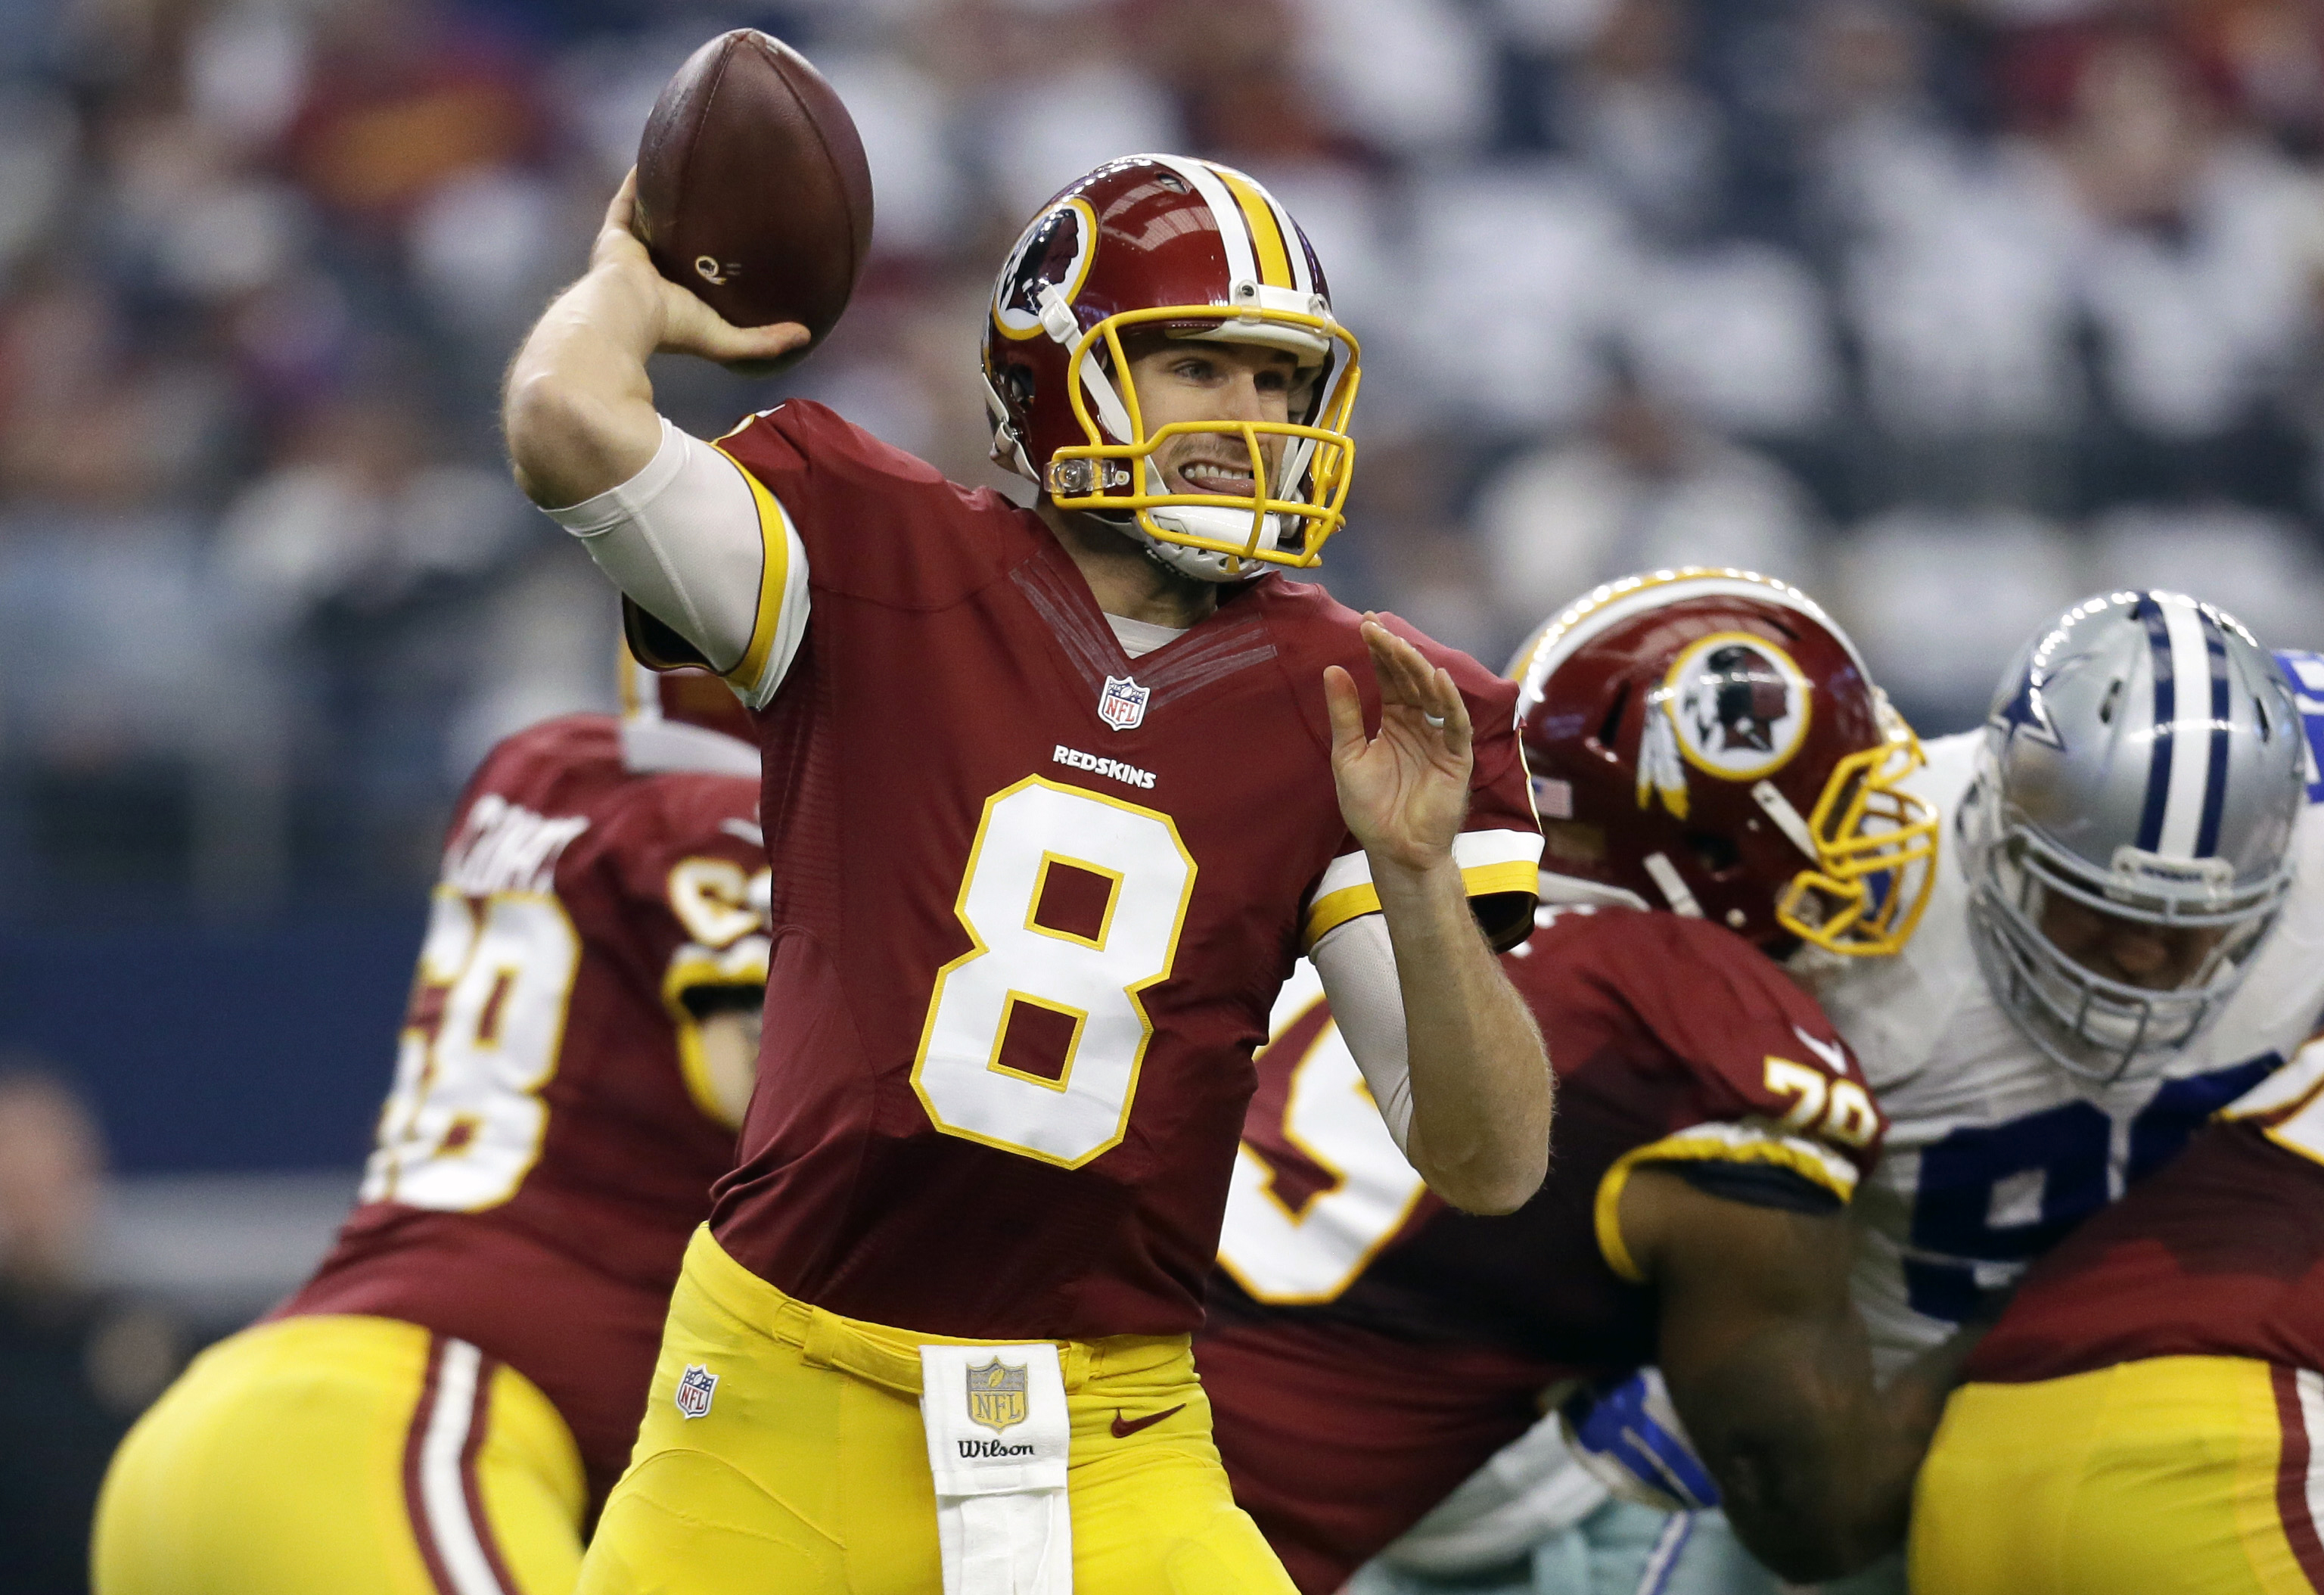 FILE - In this Sunday, Jan. 3, 2016, file photo, Washington Redskins quarterback Kirk Cousins (8) looks to pass under pressure in the first half of an NFL football game against the Dallas Cowboys in Arlington, Texas. Cousins has soared, breaking team pass